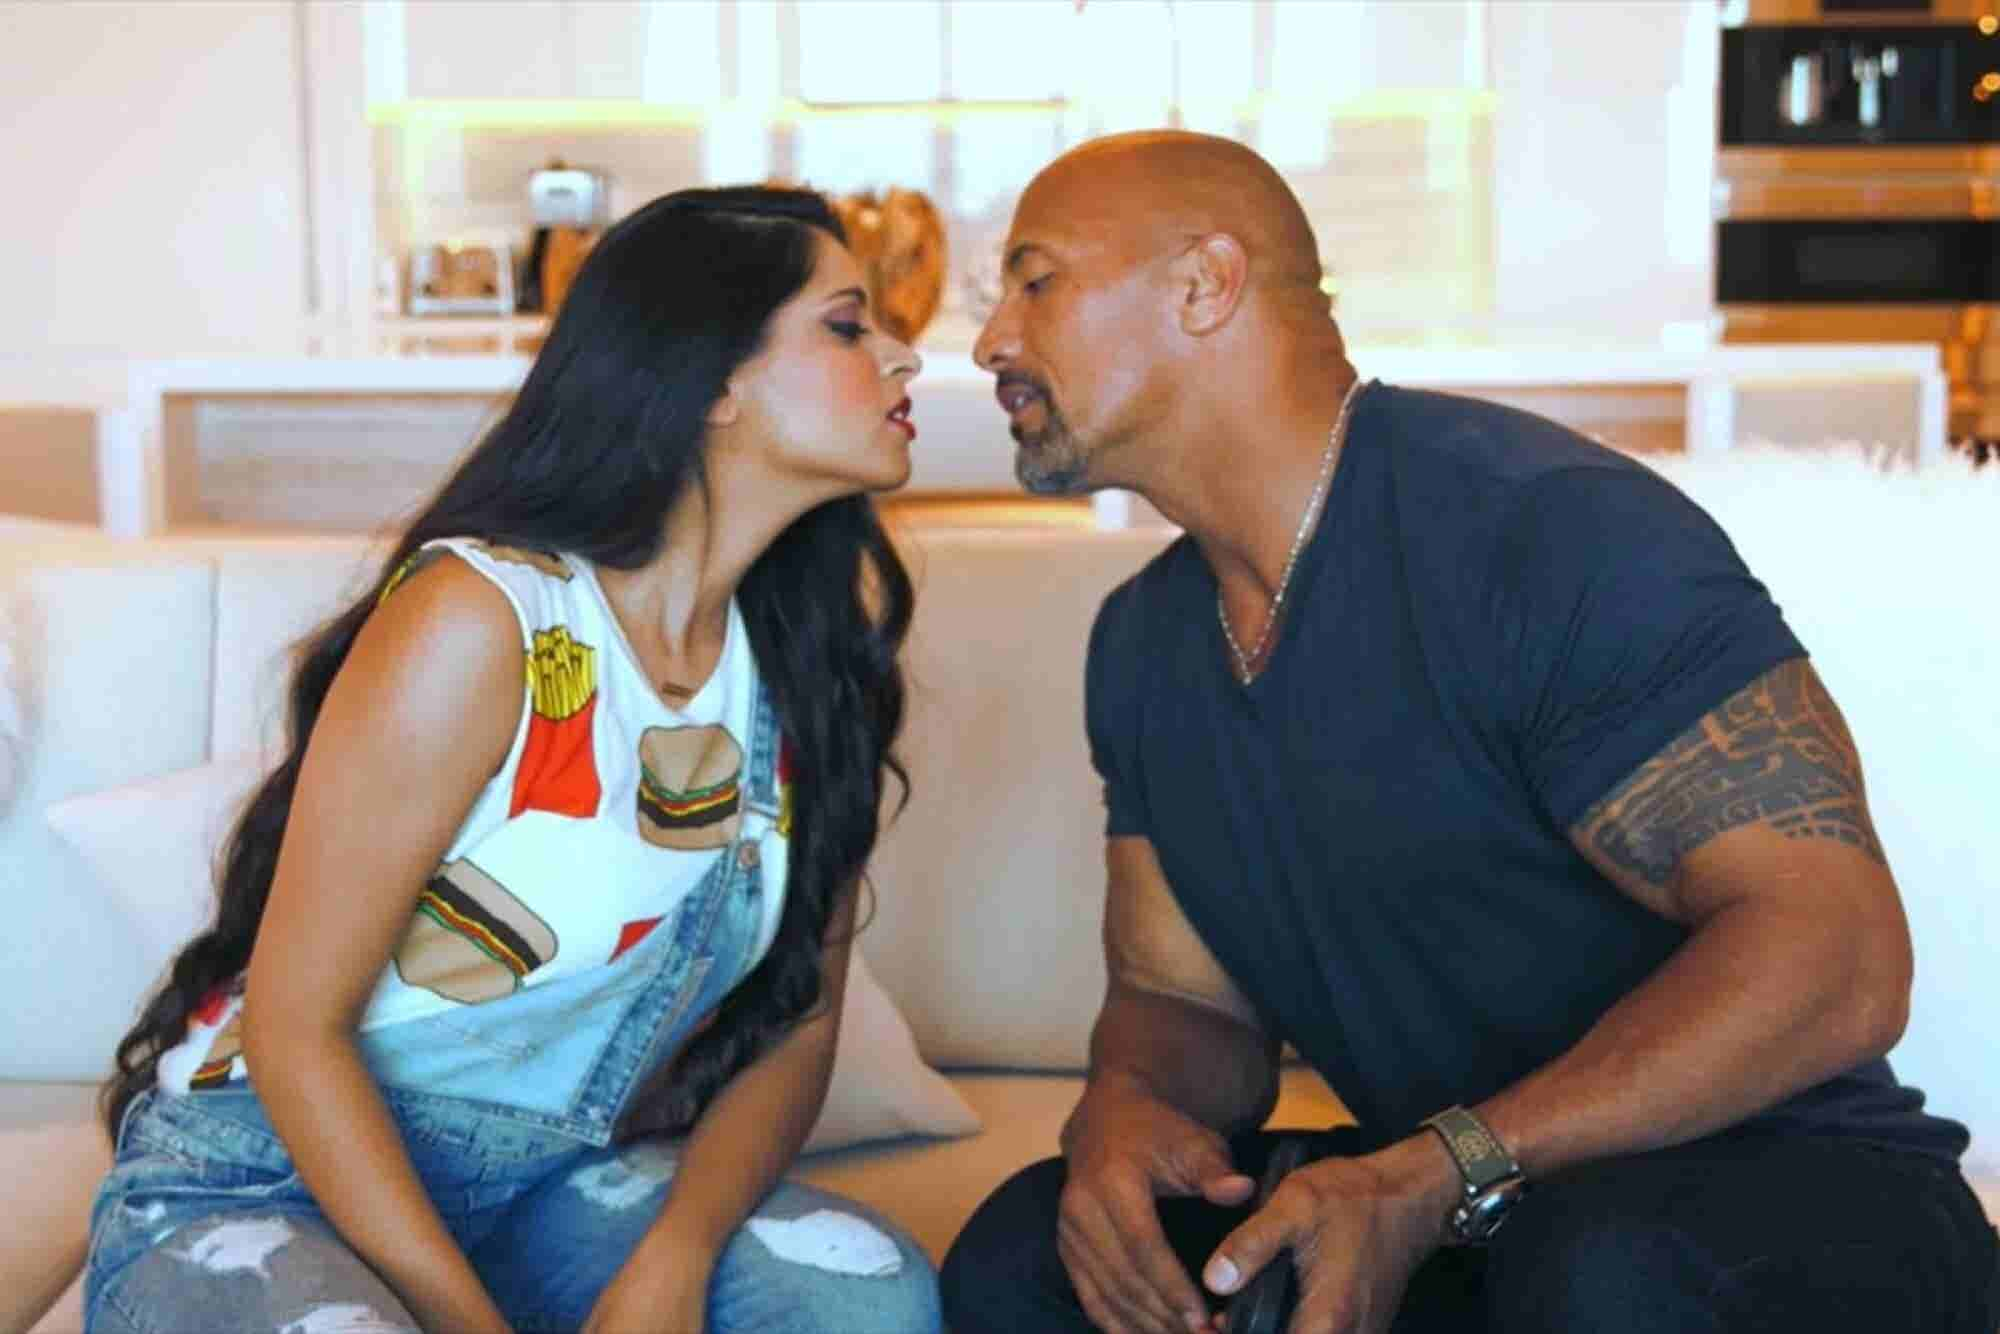 People's 'Sexiest Man Alive' Dwayne 'The Rock' Johnson on How to Be a YouTube Star